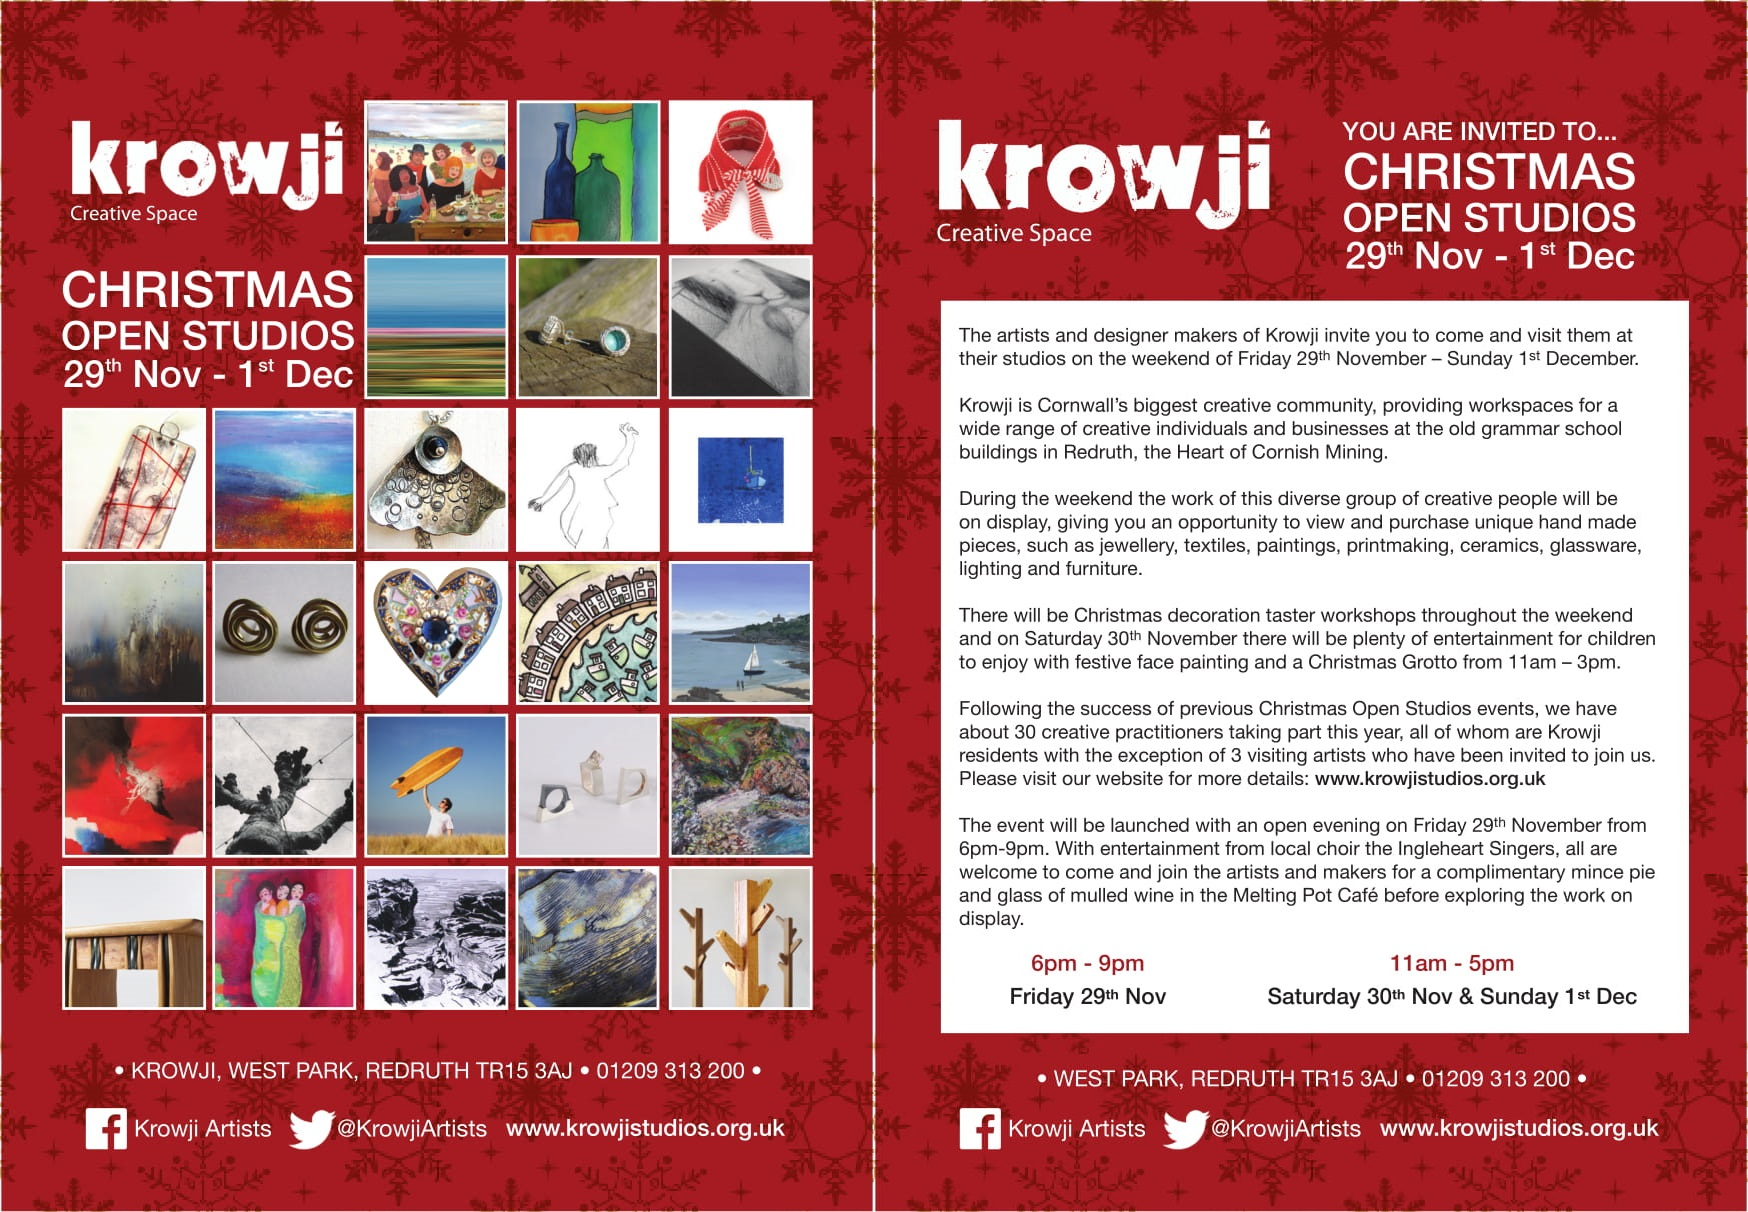 Krowji Christmas Open Studios 2013 Flyer